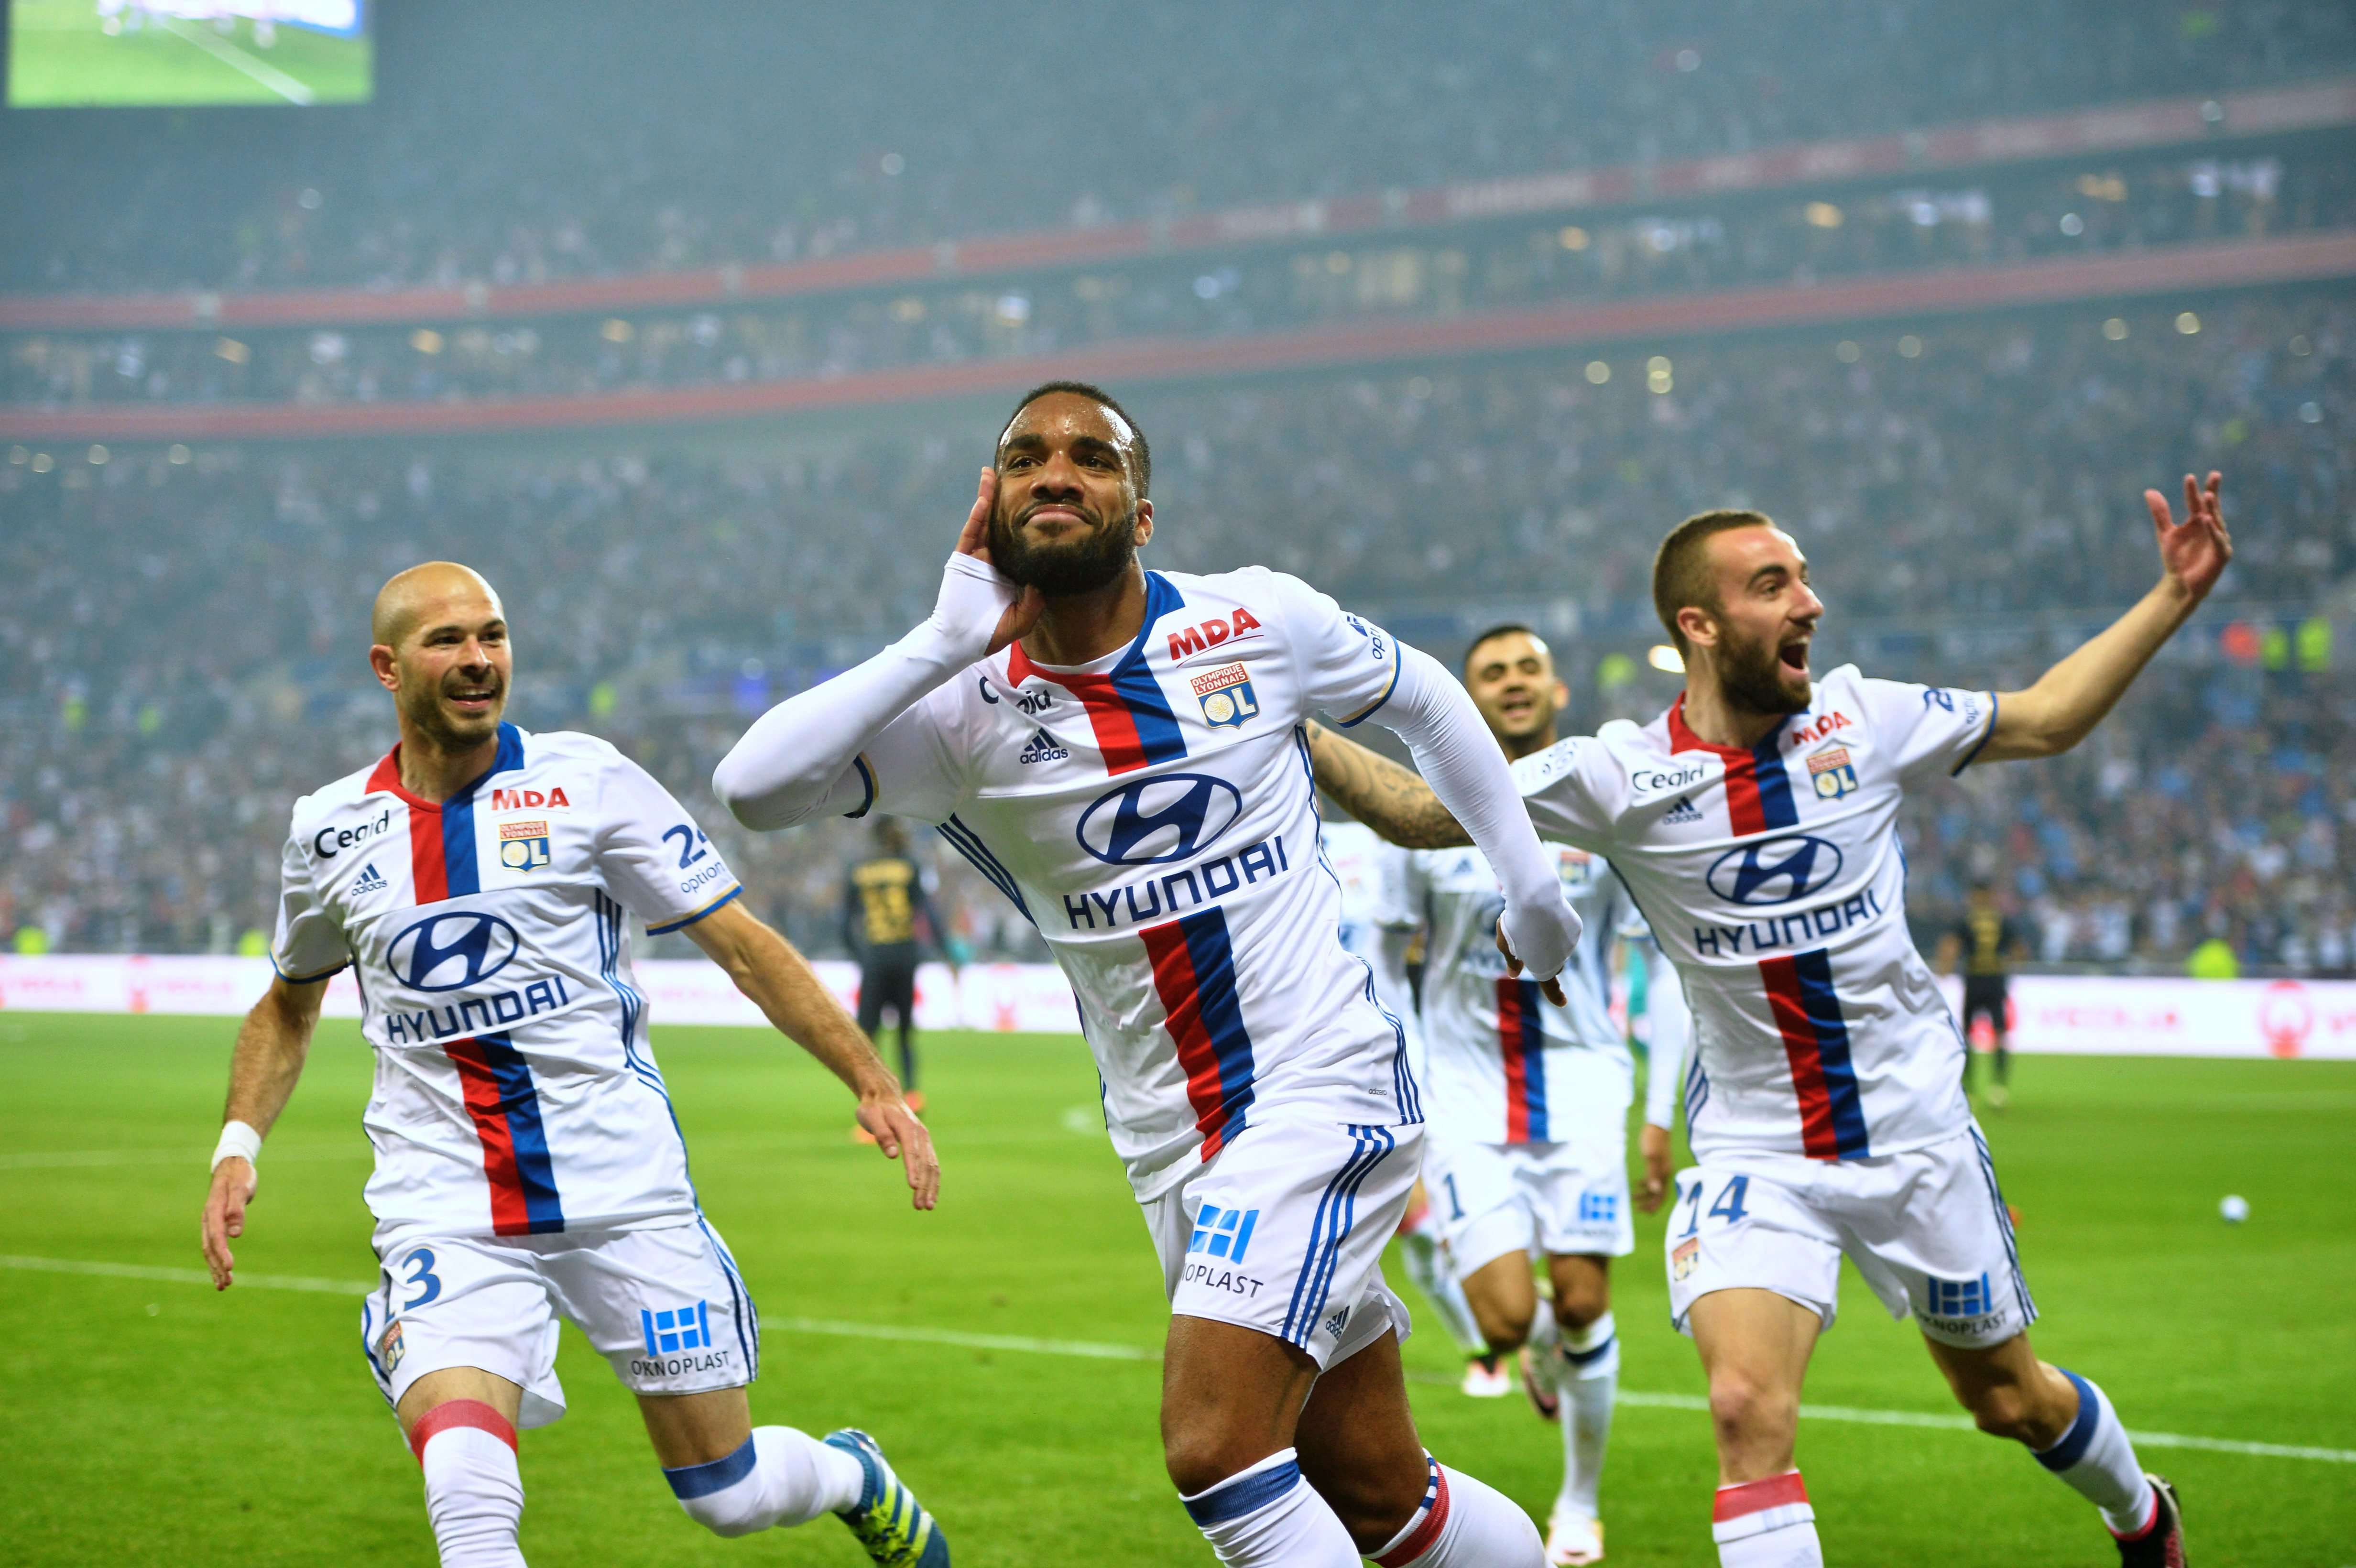 Rencontres ligue 1 2018